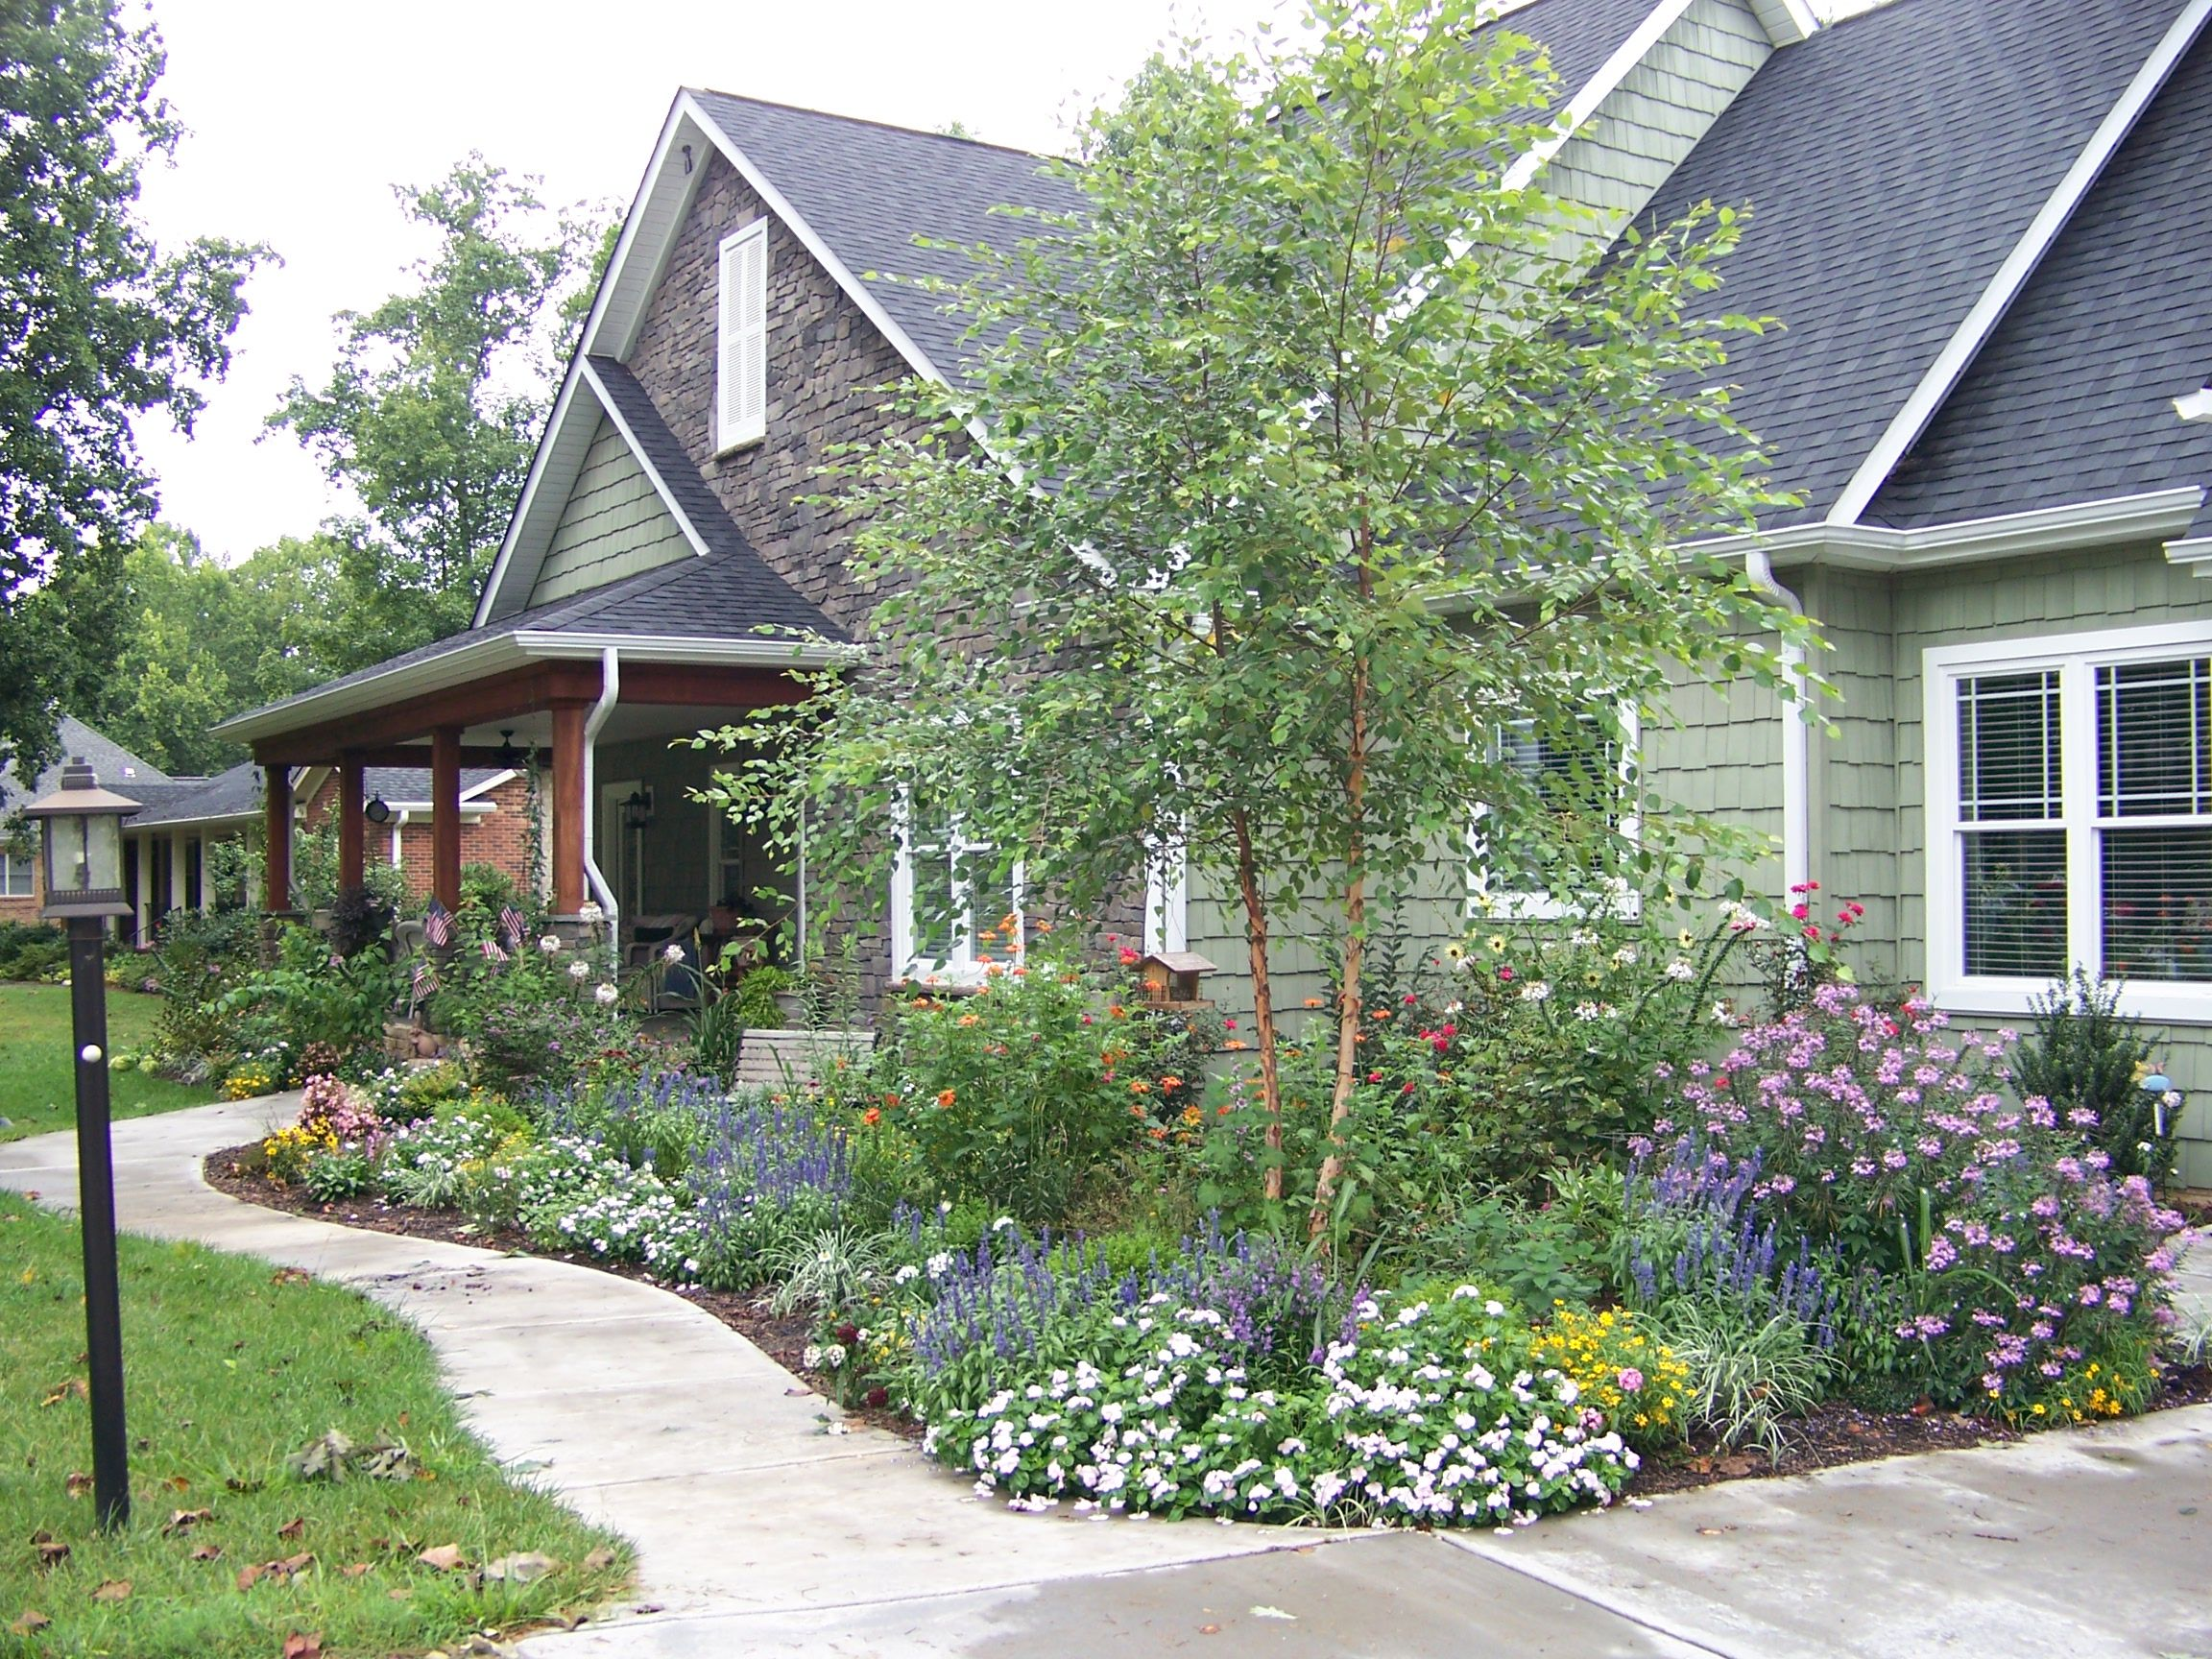 Superior Cottage Landscaping Ideas For Front Yard Part - 5: Landscape Ideas - Landscape Design Forum - GardenWeb, Heritage River Birch